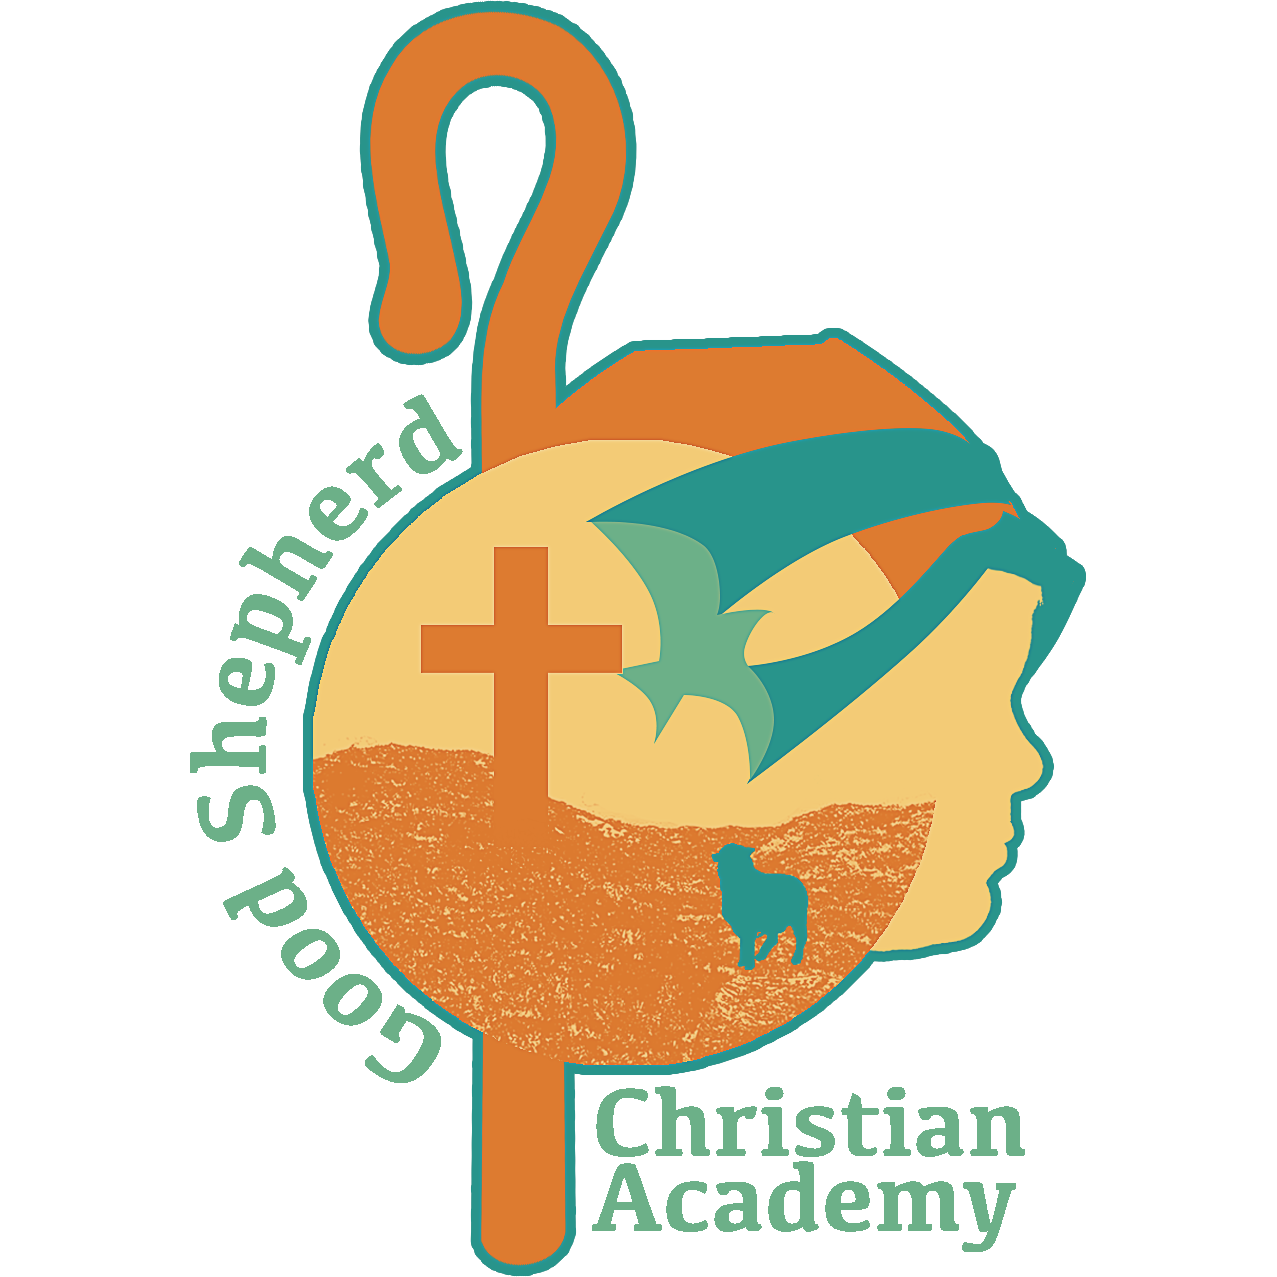 Good Shepherd Christian Academy